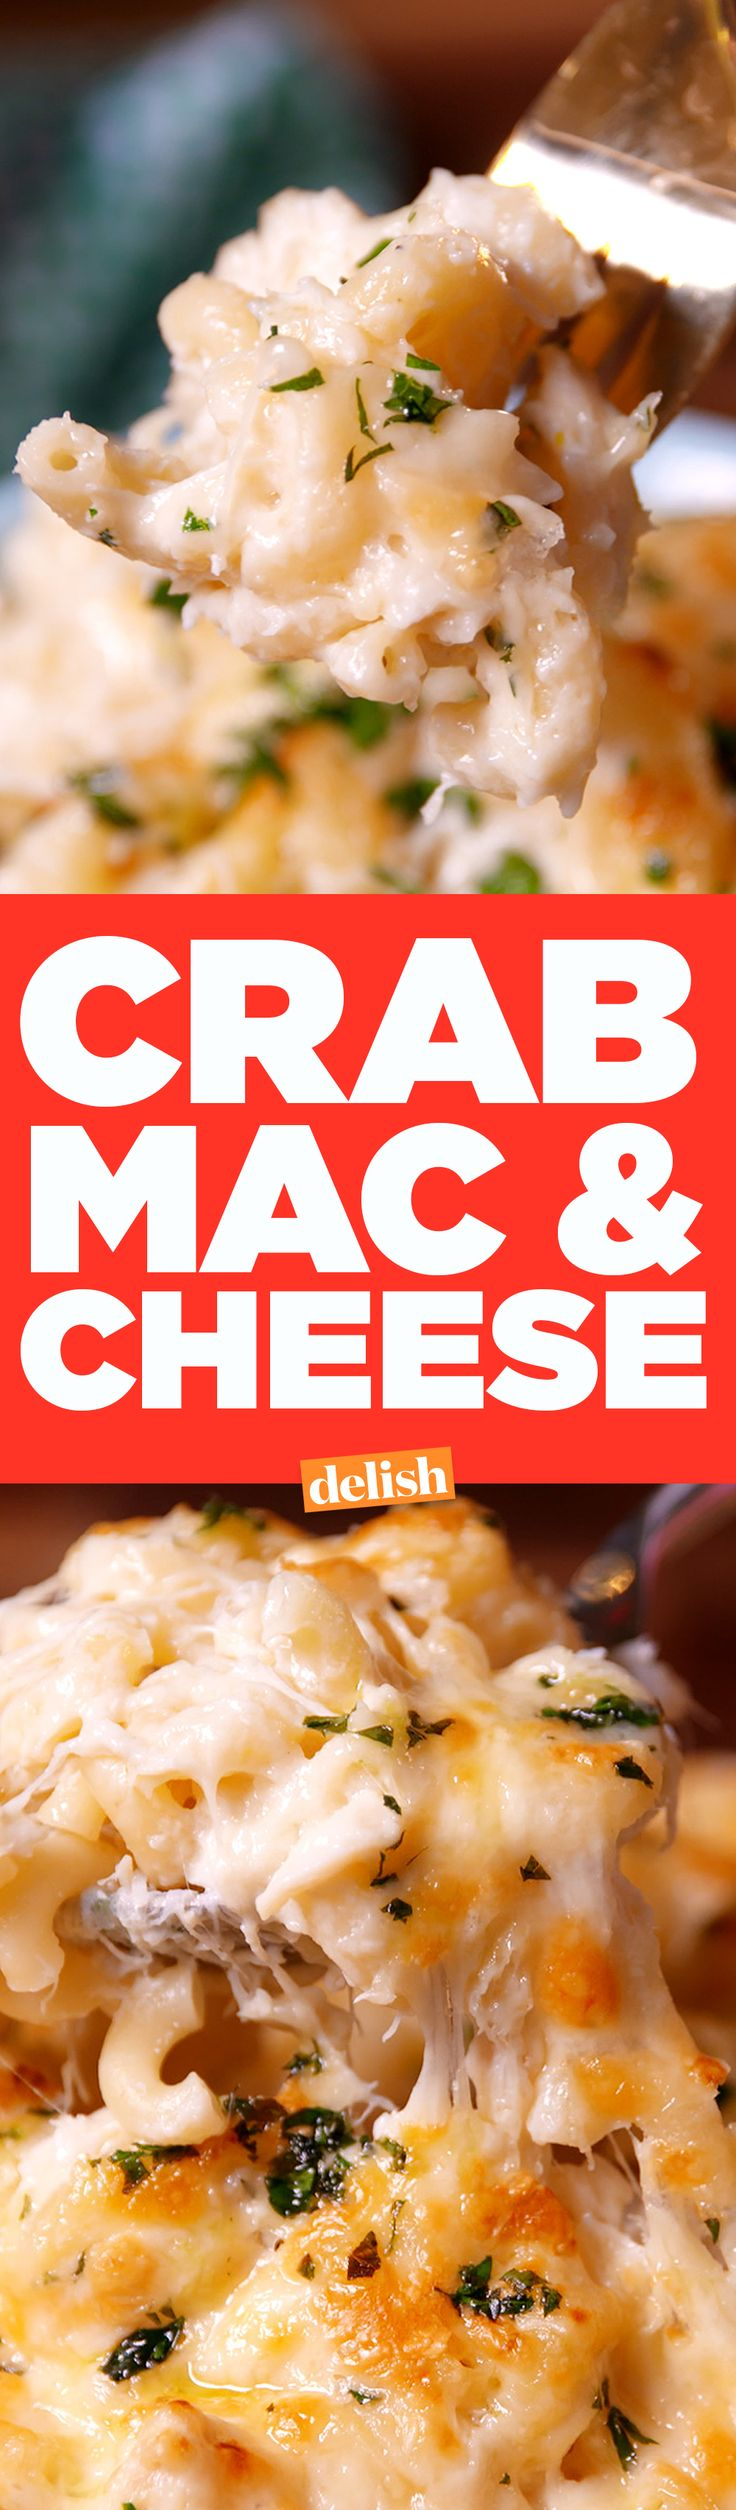 The only thing better than macaroni and cheese? Crab Mac & Cheese. Get the recipe on Delish.com.